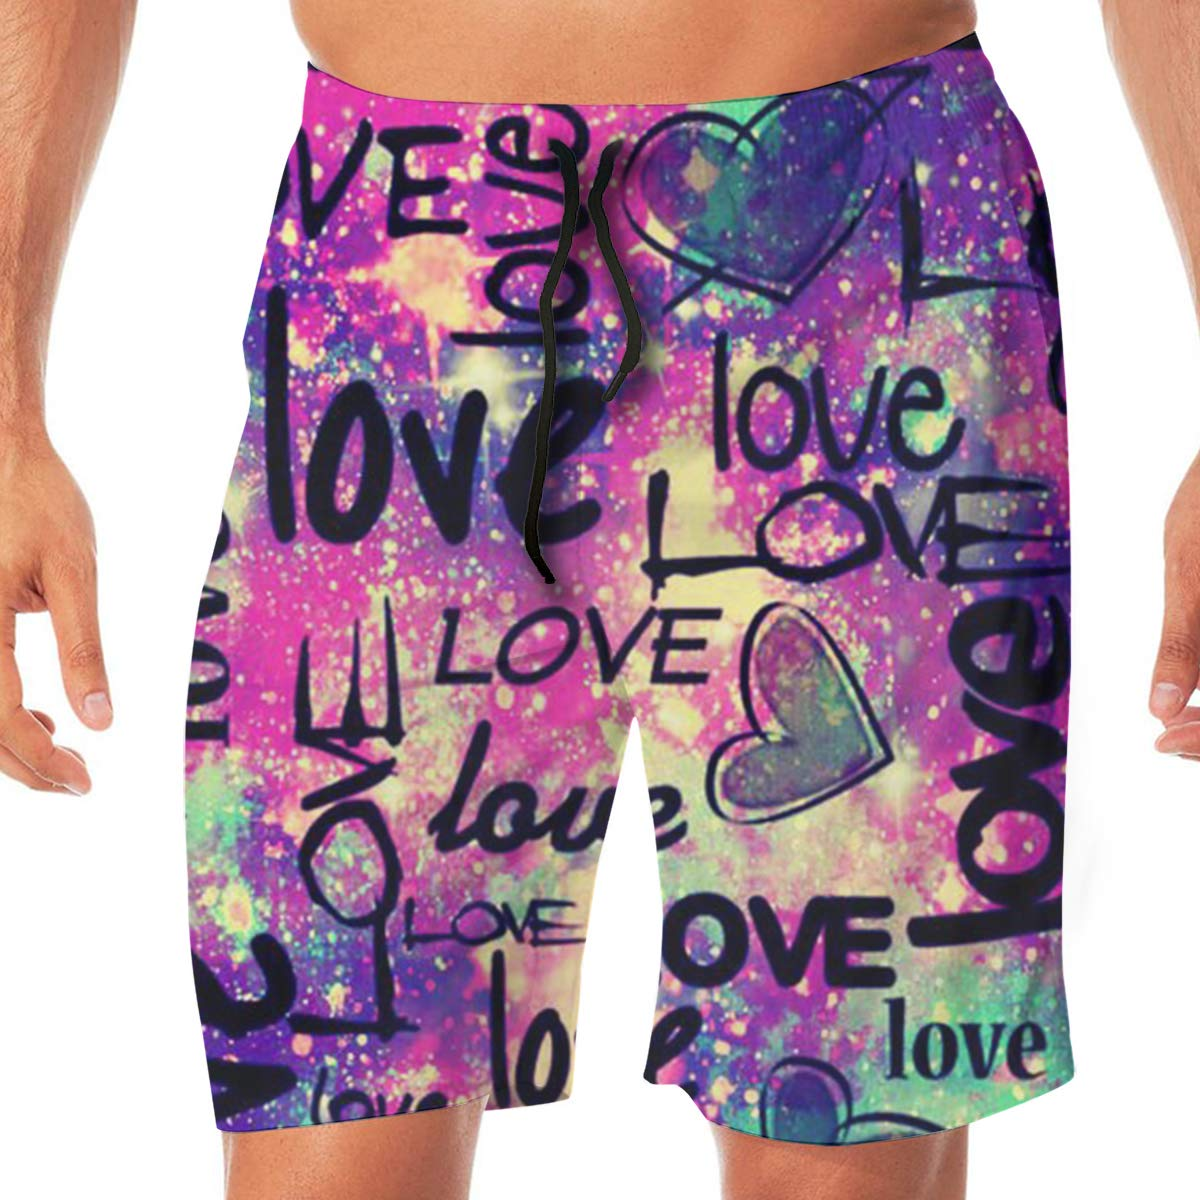 Wexzss Happy Valentines Day Funny Summer Quick-Drying Swim Trunks Beach Shorts Cargo Shorts